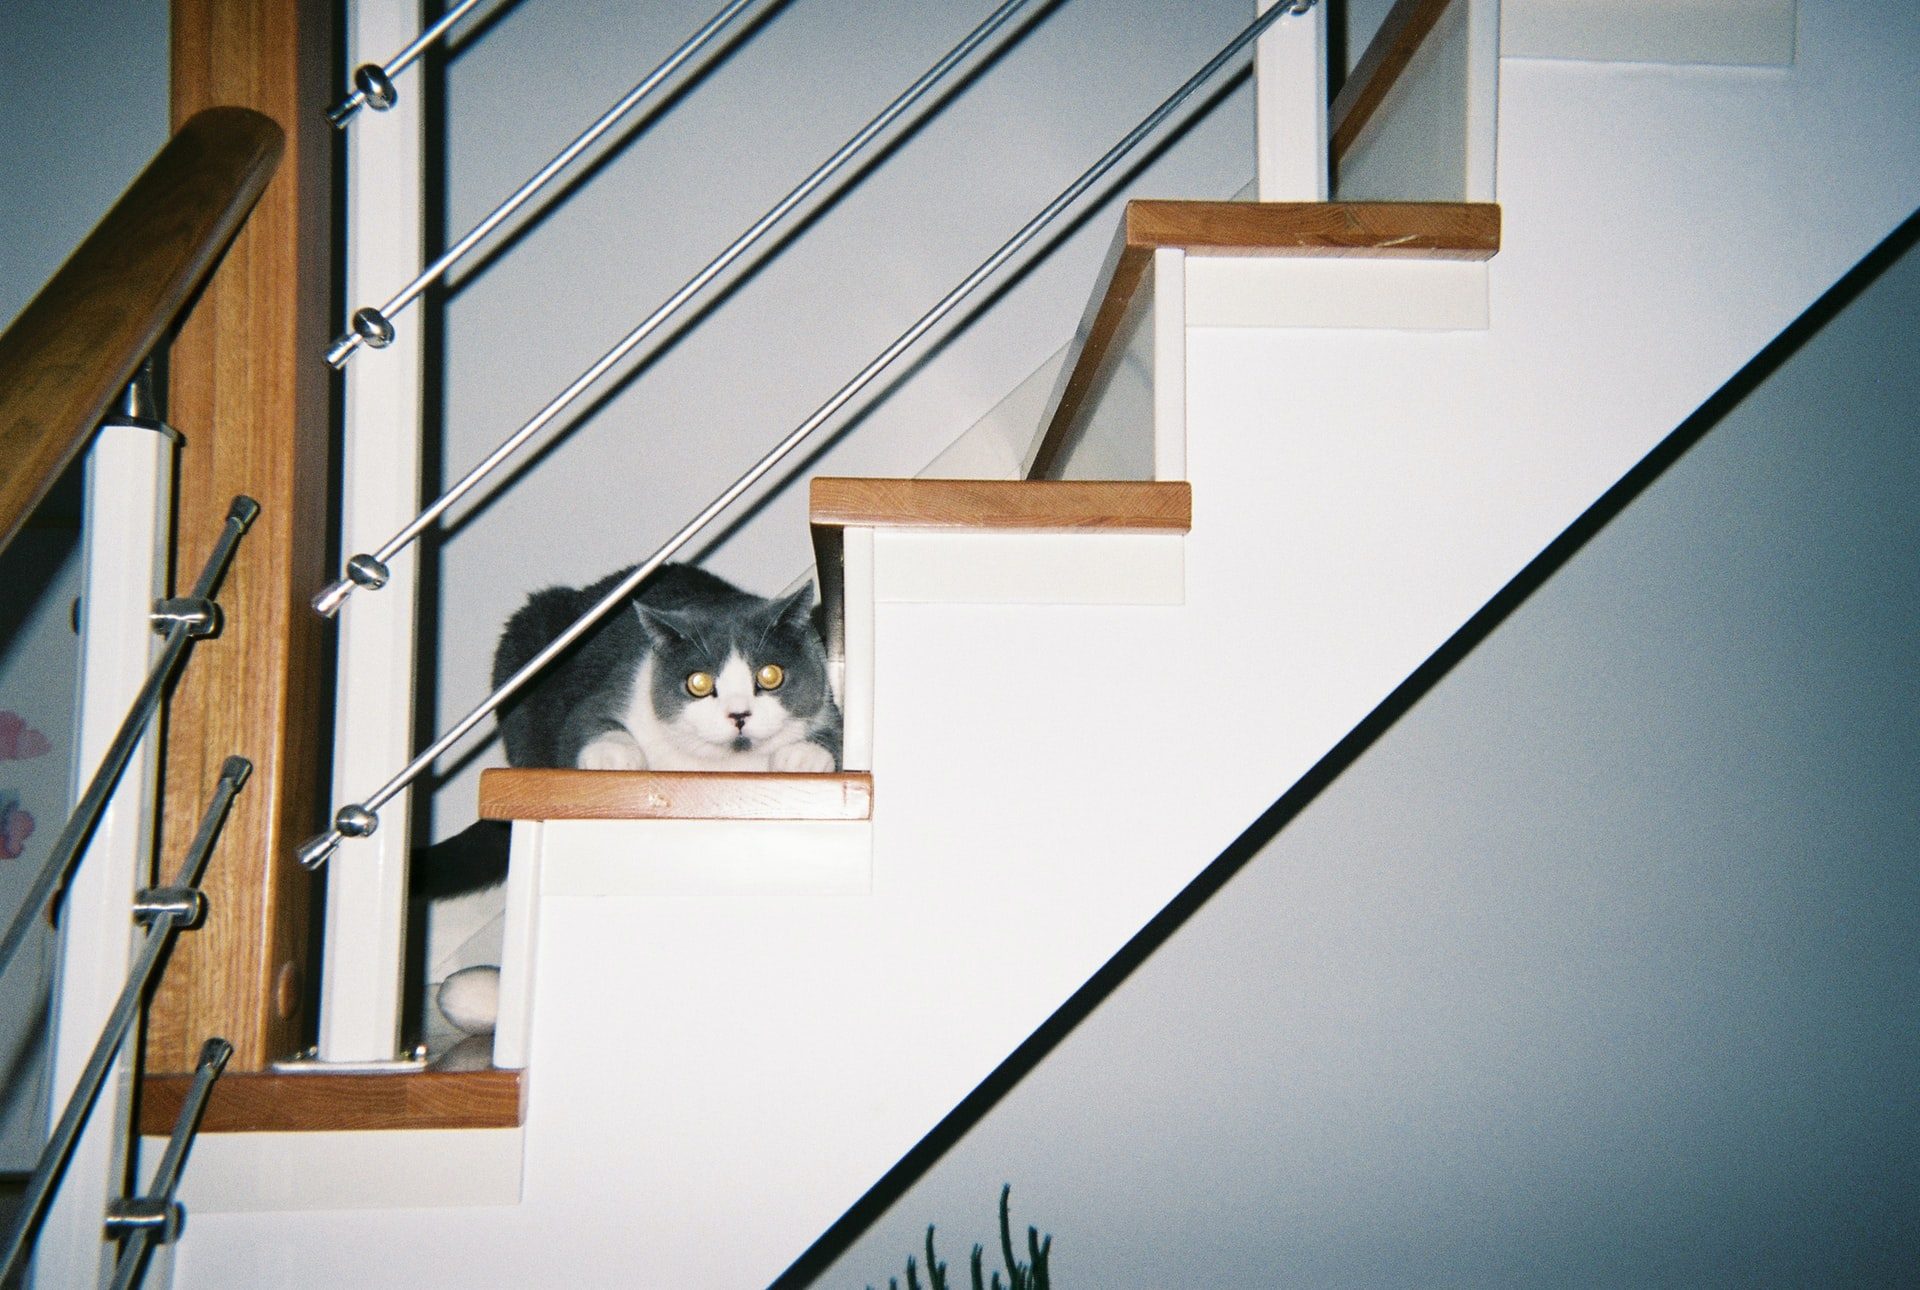 Steel Railing Styles for Your Home or Business